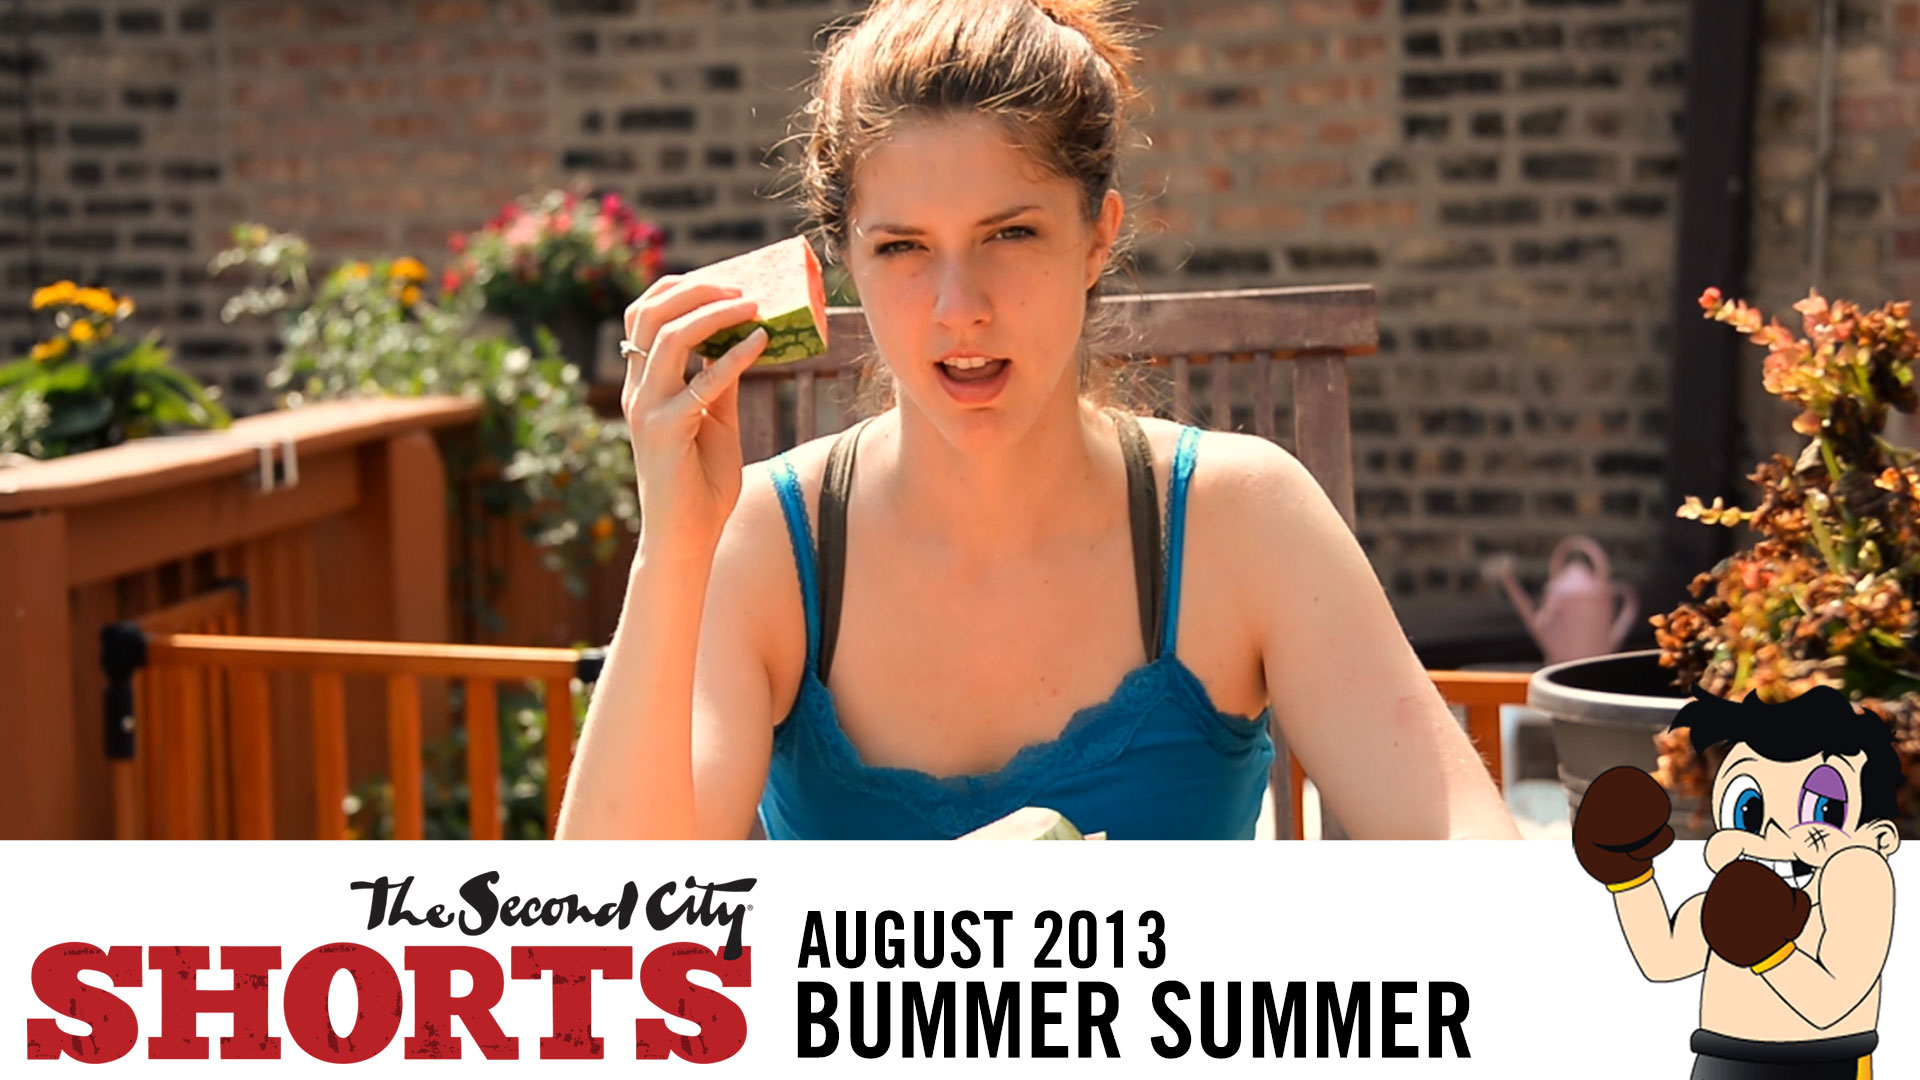 Bummer Summer – Second City Shorts Winner 8/13